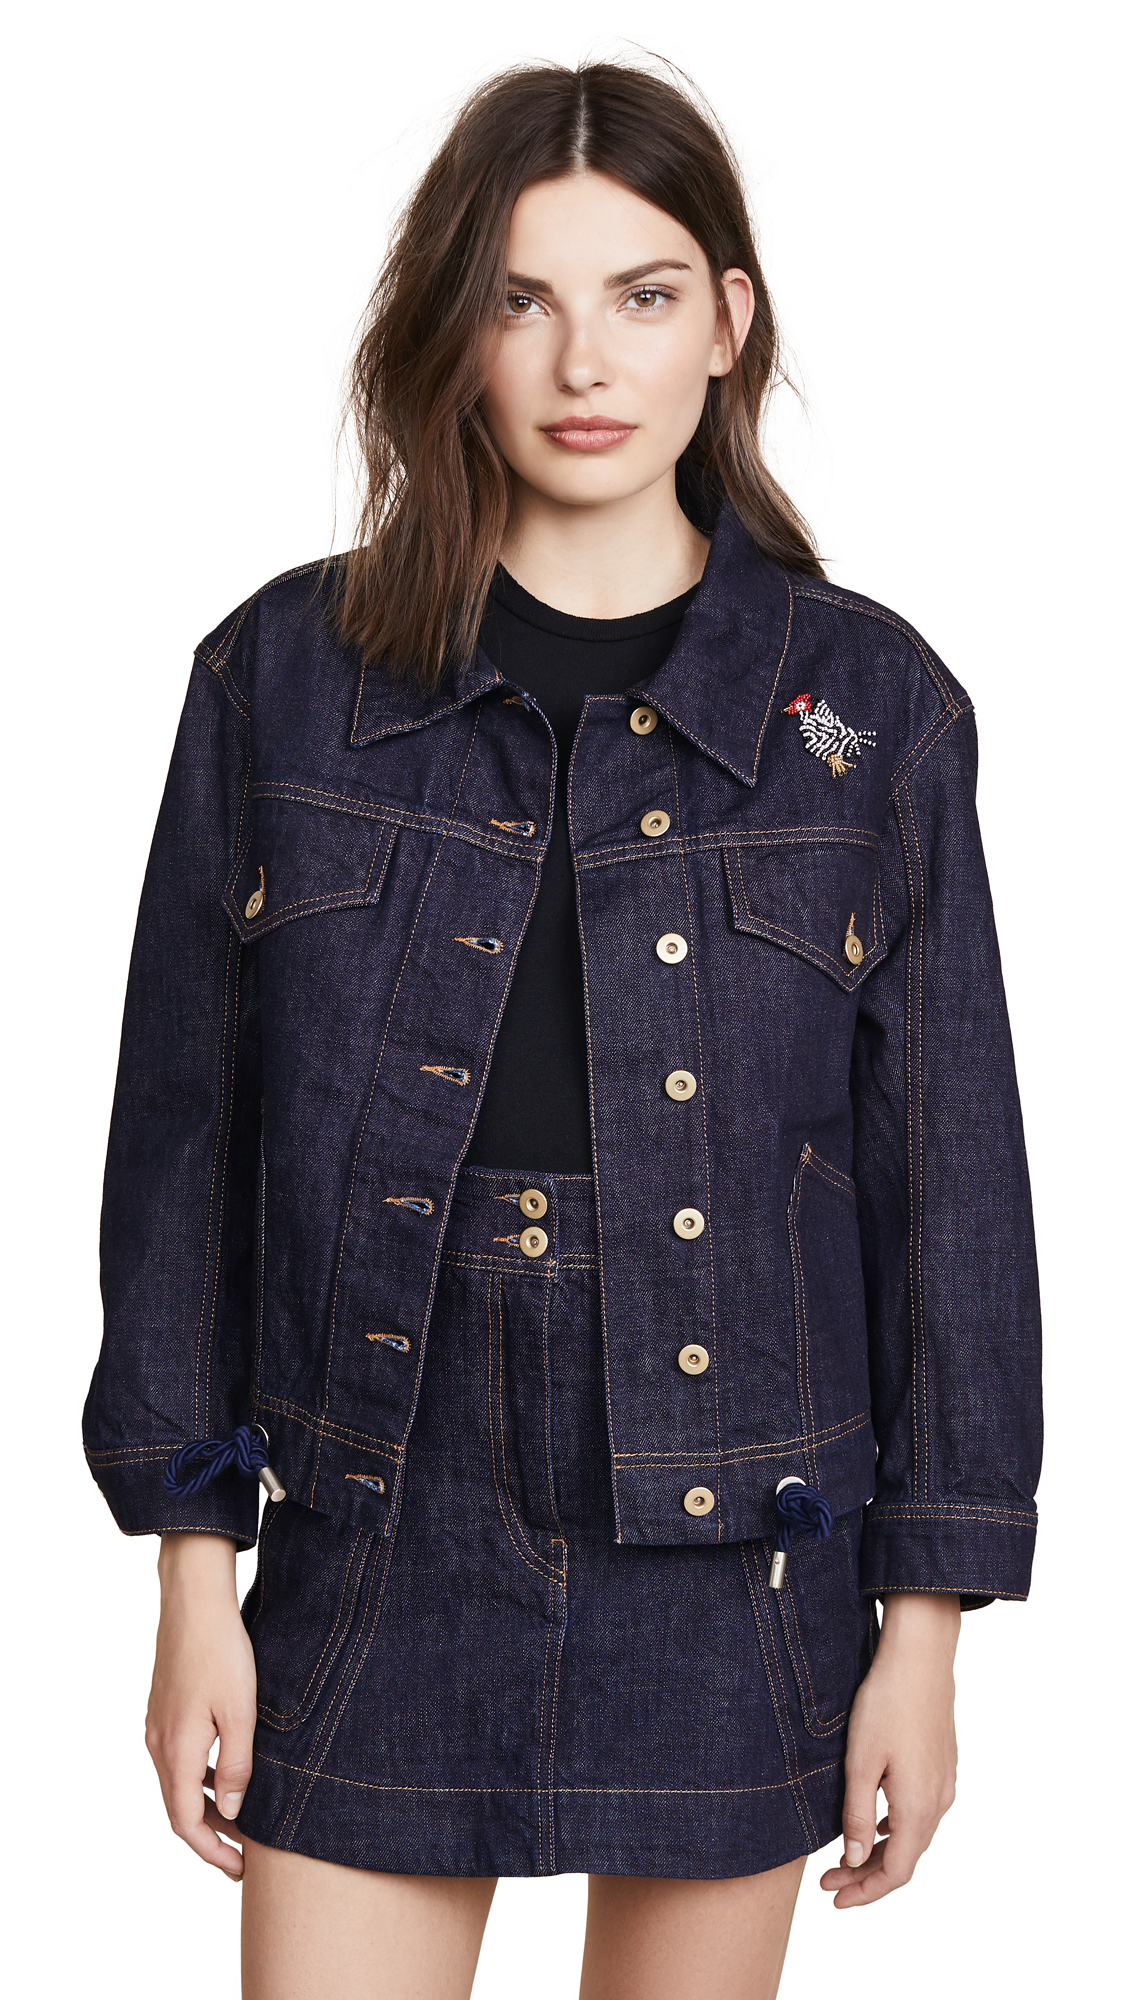 Carven Oversize Denim Jacket In Indigo